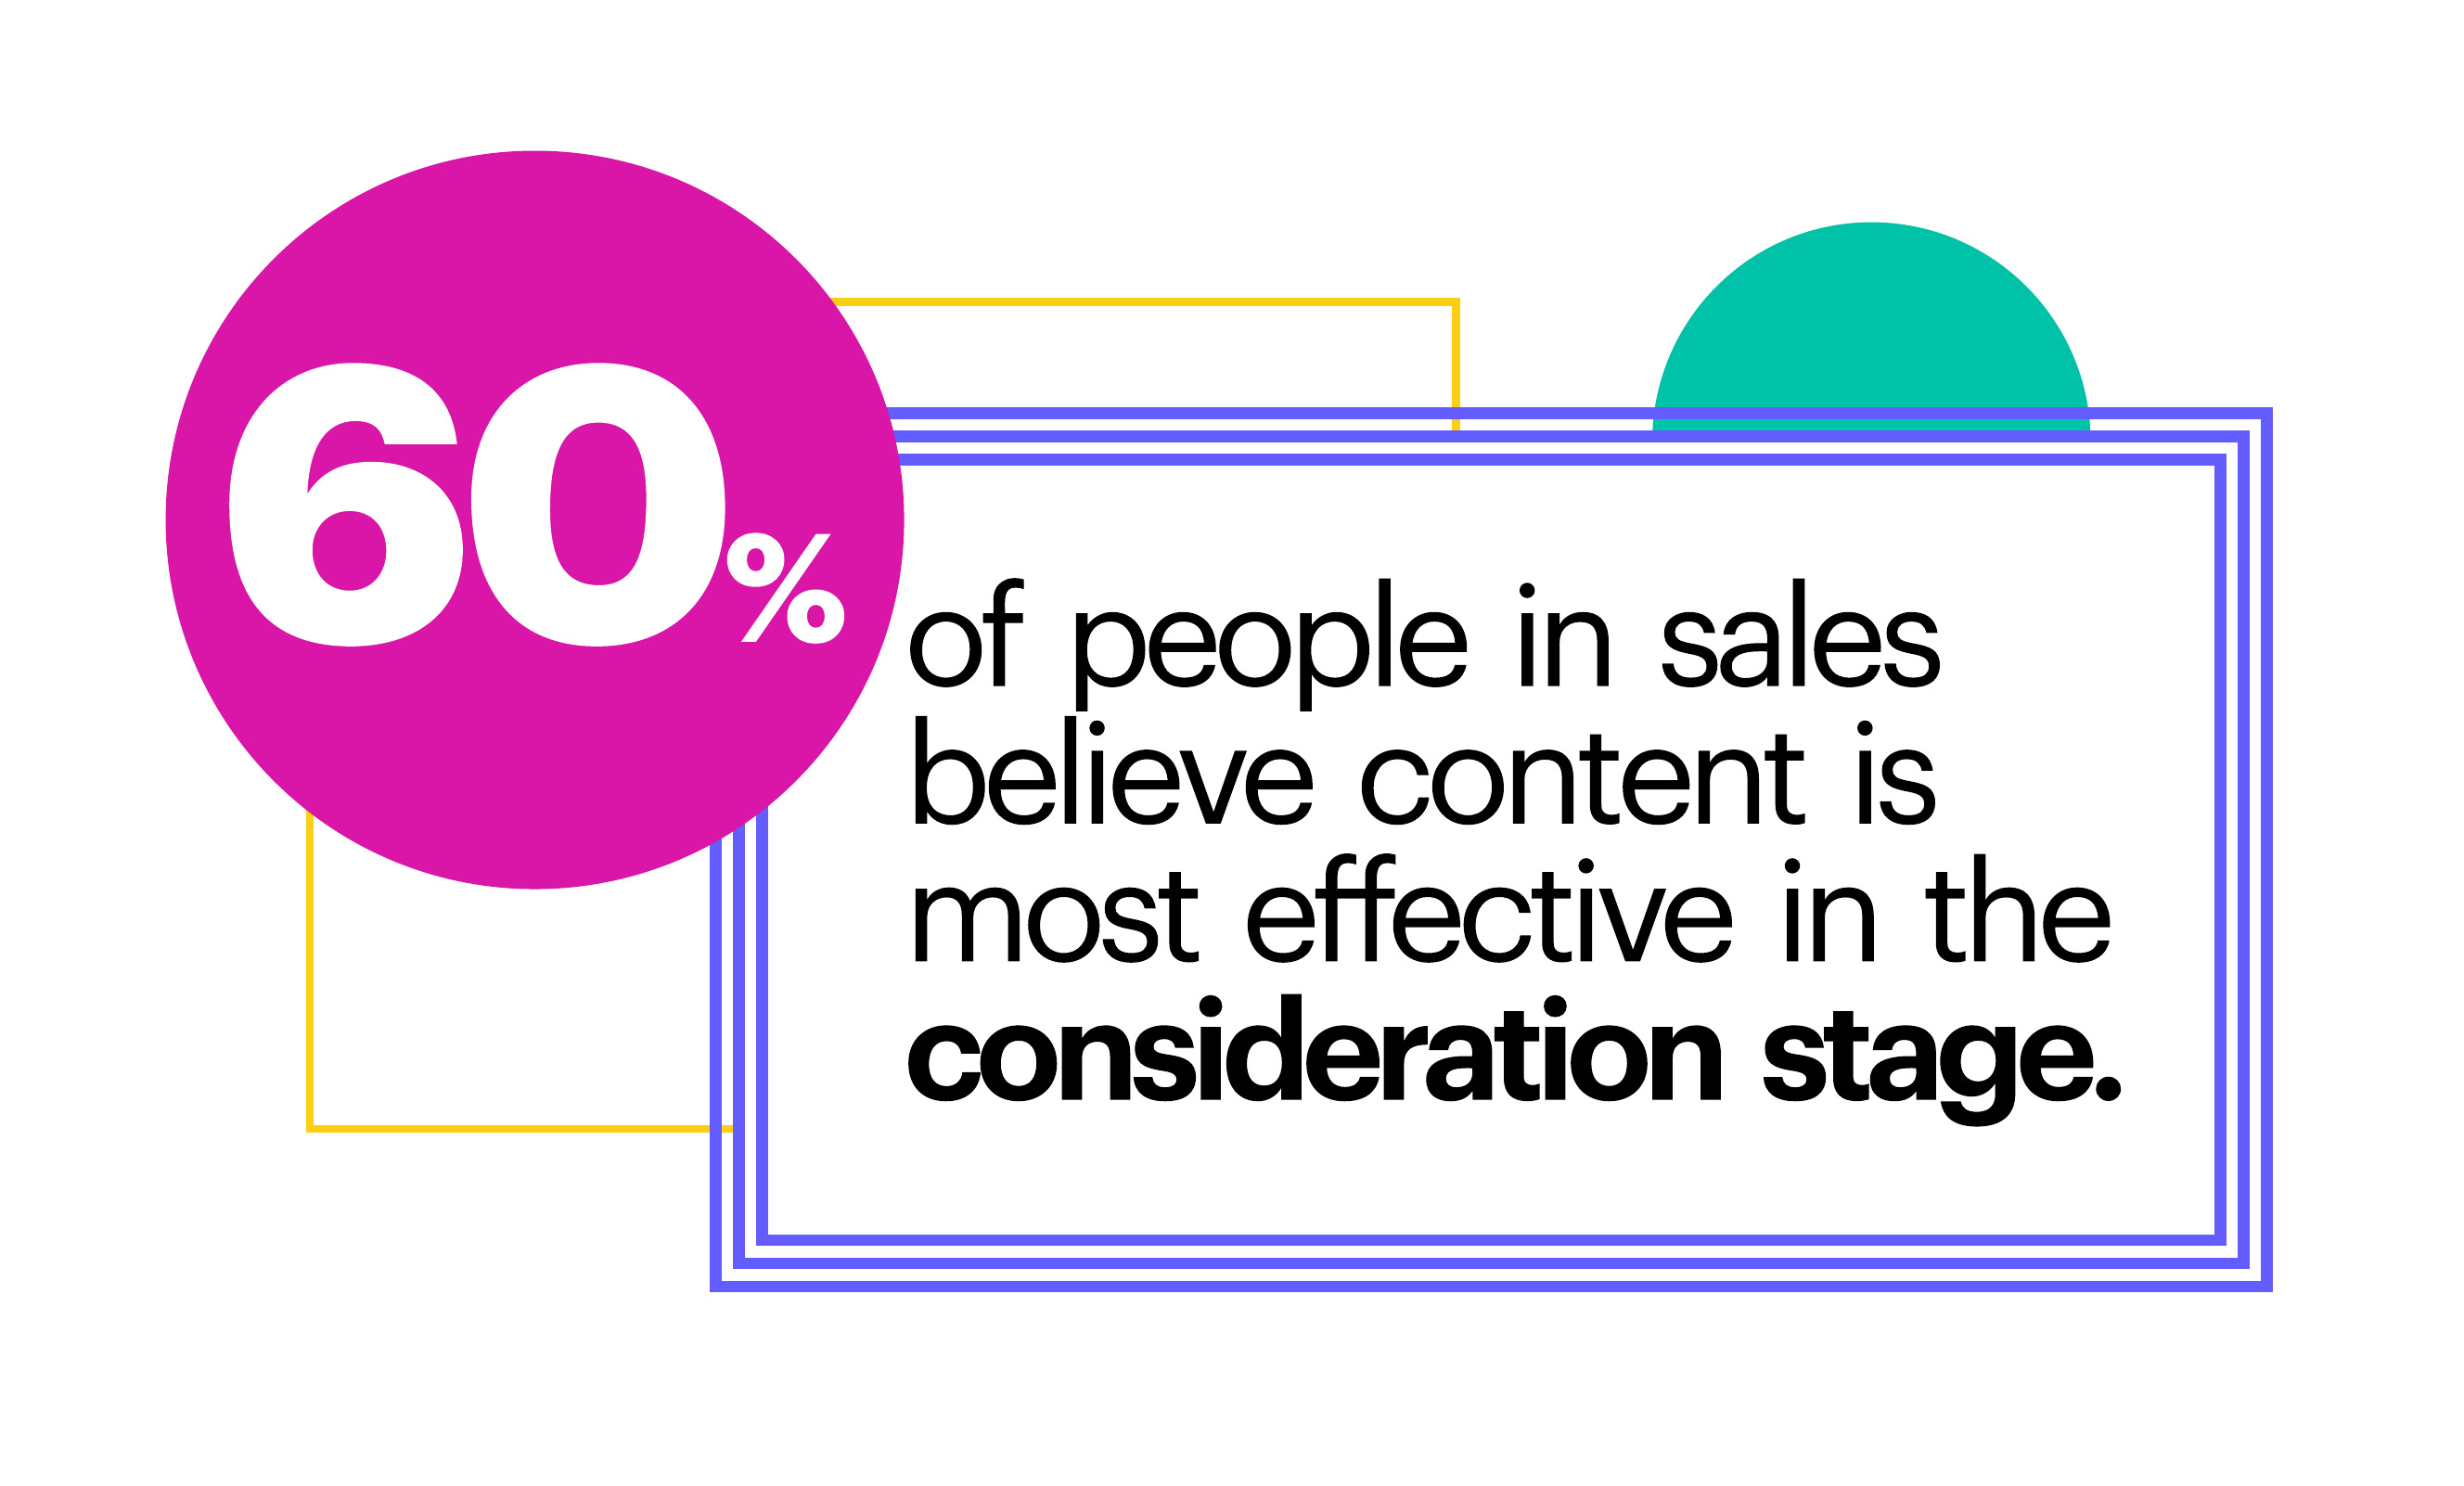 60% of people in sales believe content is most effective in the consideration stage.